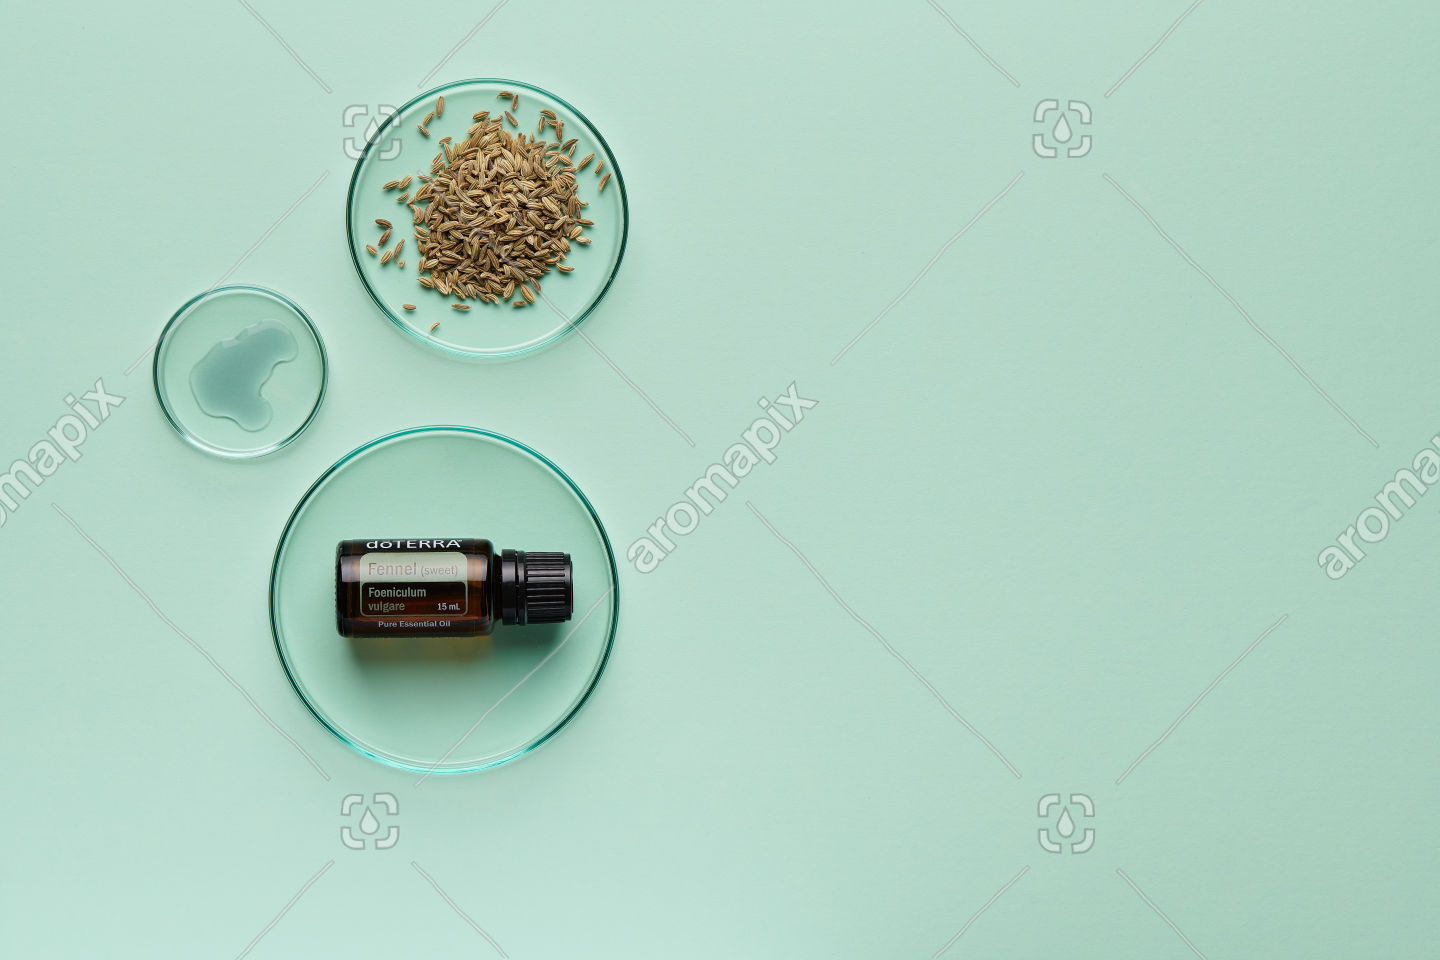 doTERRA Fennel with fennel seeds on pale green